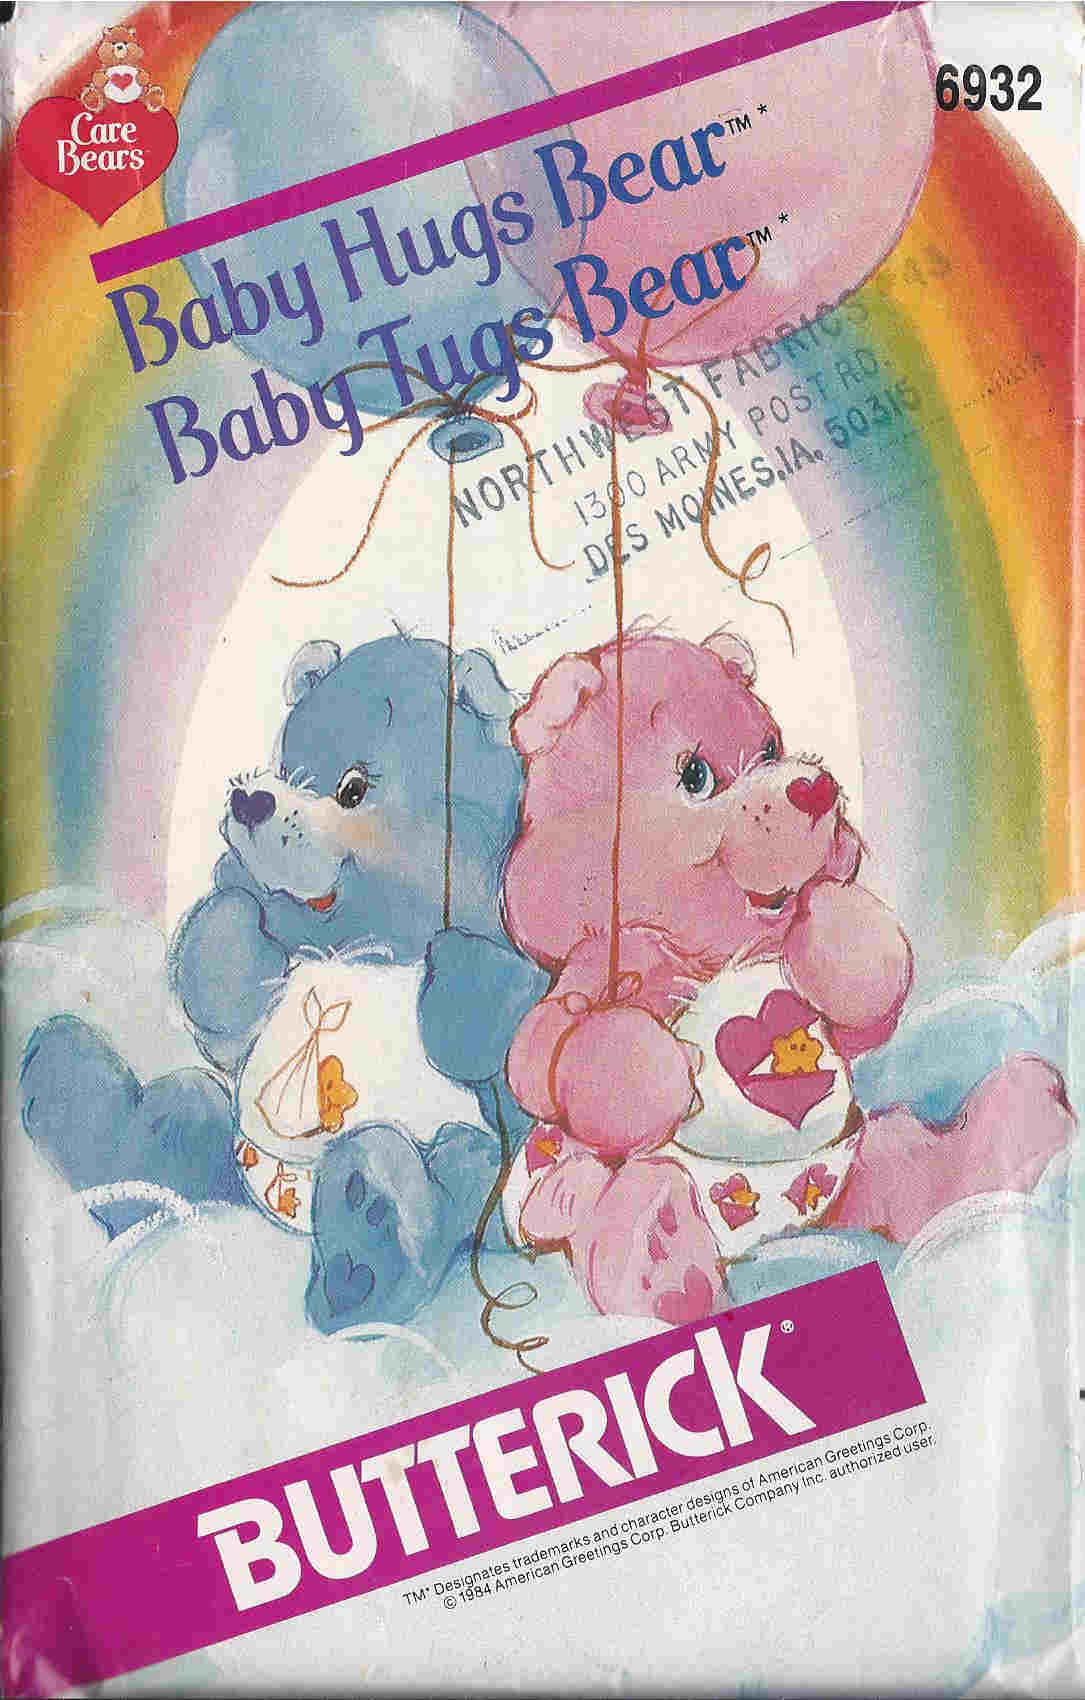 Care Bears sewing pattern Baby Hugs Baby Tugs